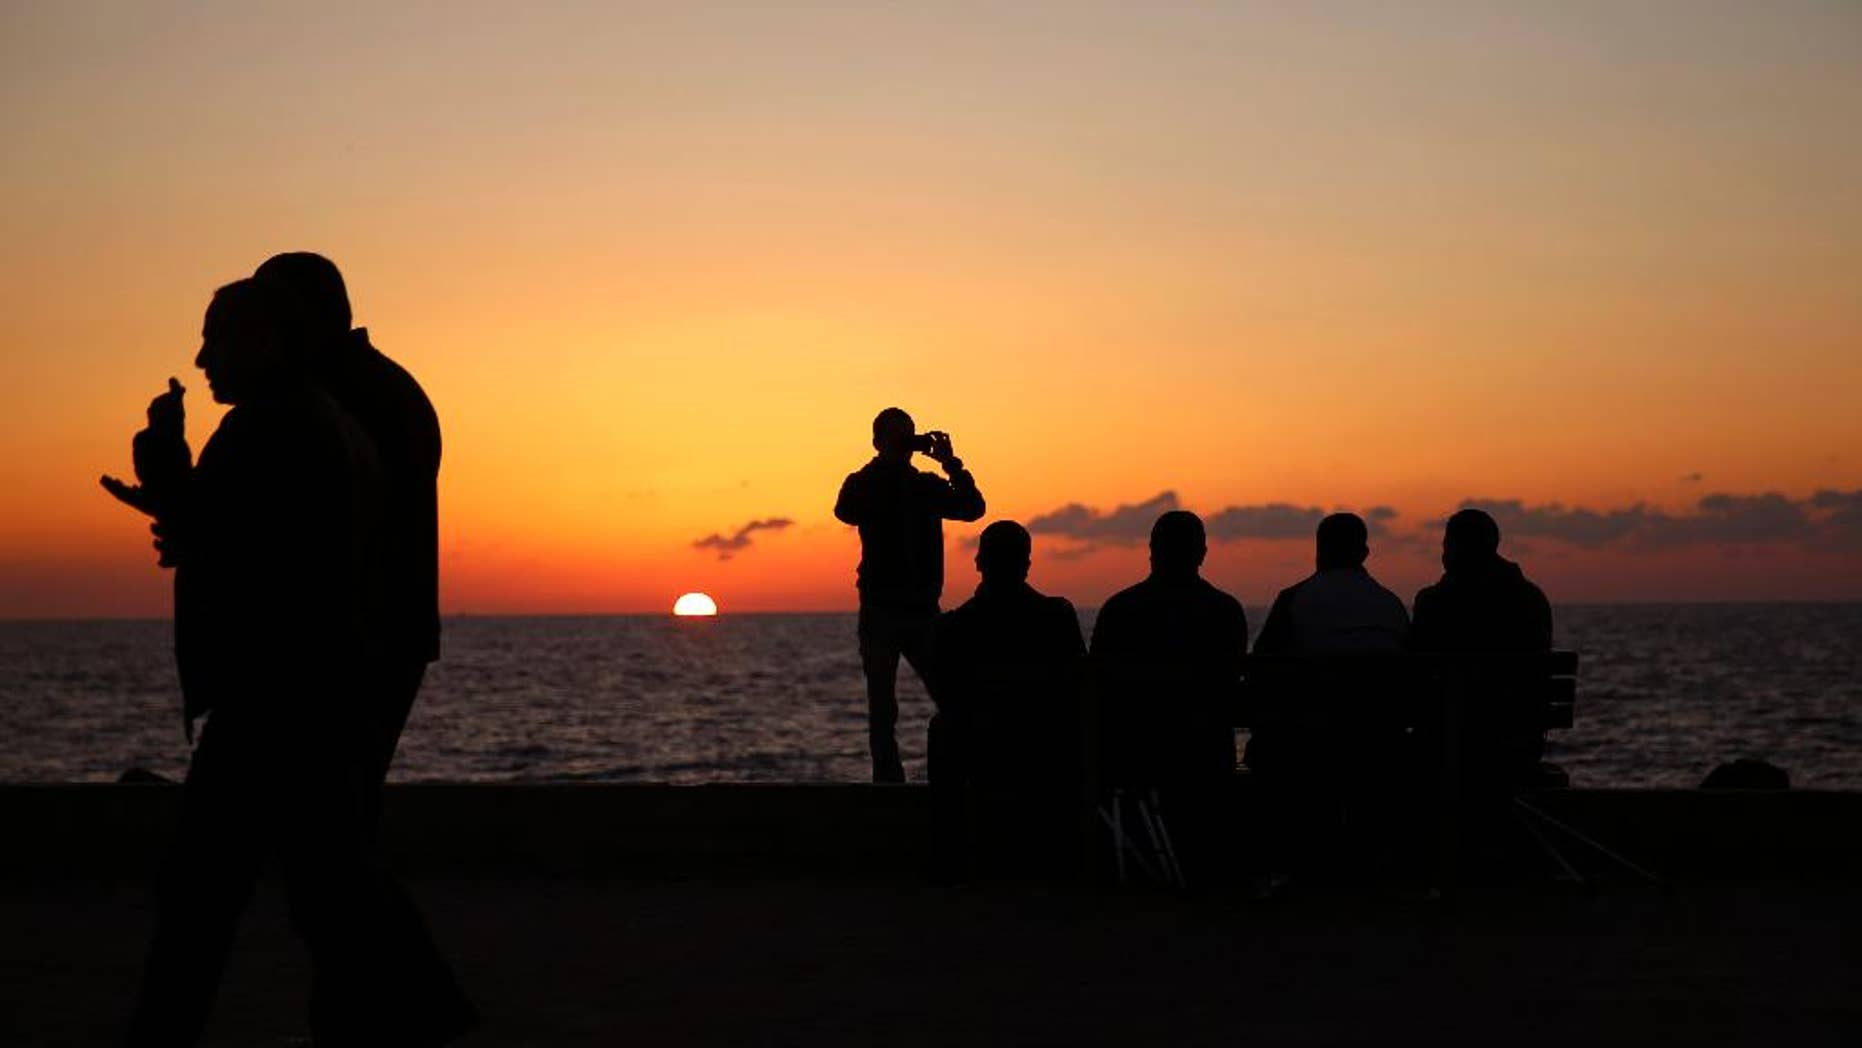 Palestinians sit on a chair during the sunset, at the Gaza port, in Gaza City, Monday, Dec. 12, 2016. The harbor is one of the few open public spaces in this densely populated city. (AP Photo/Hatem Moussa)